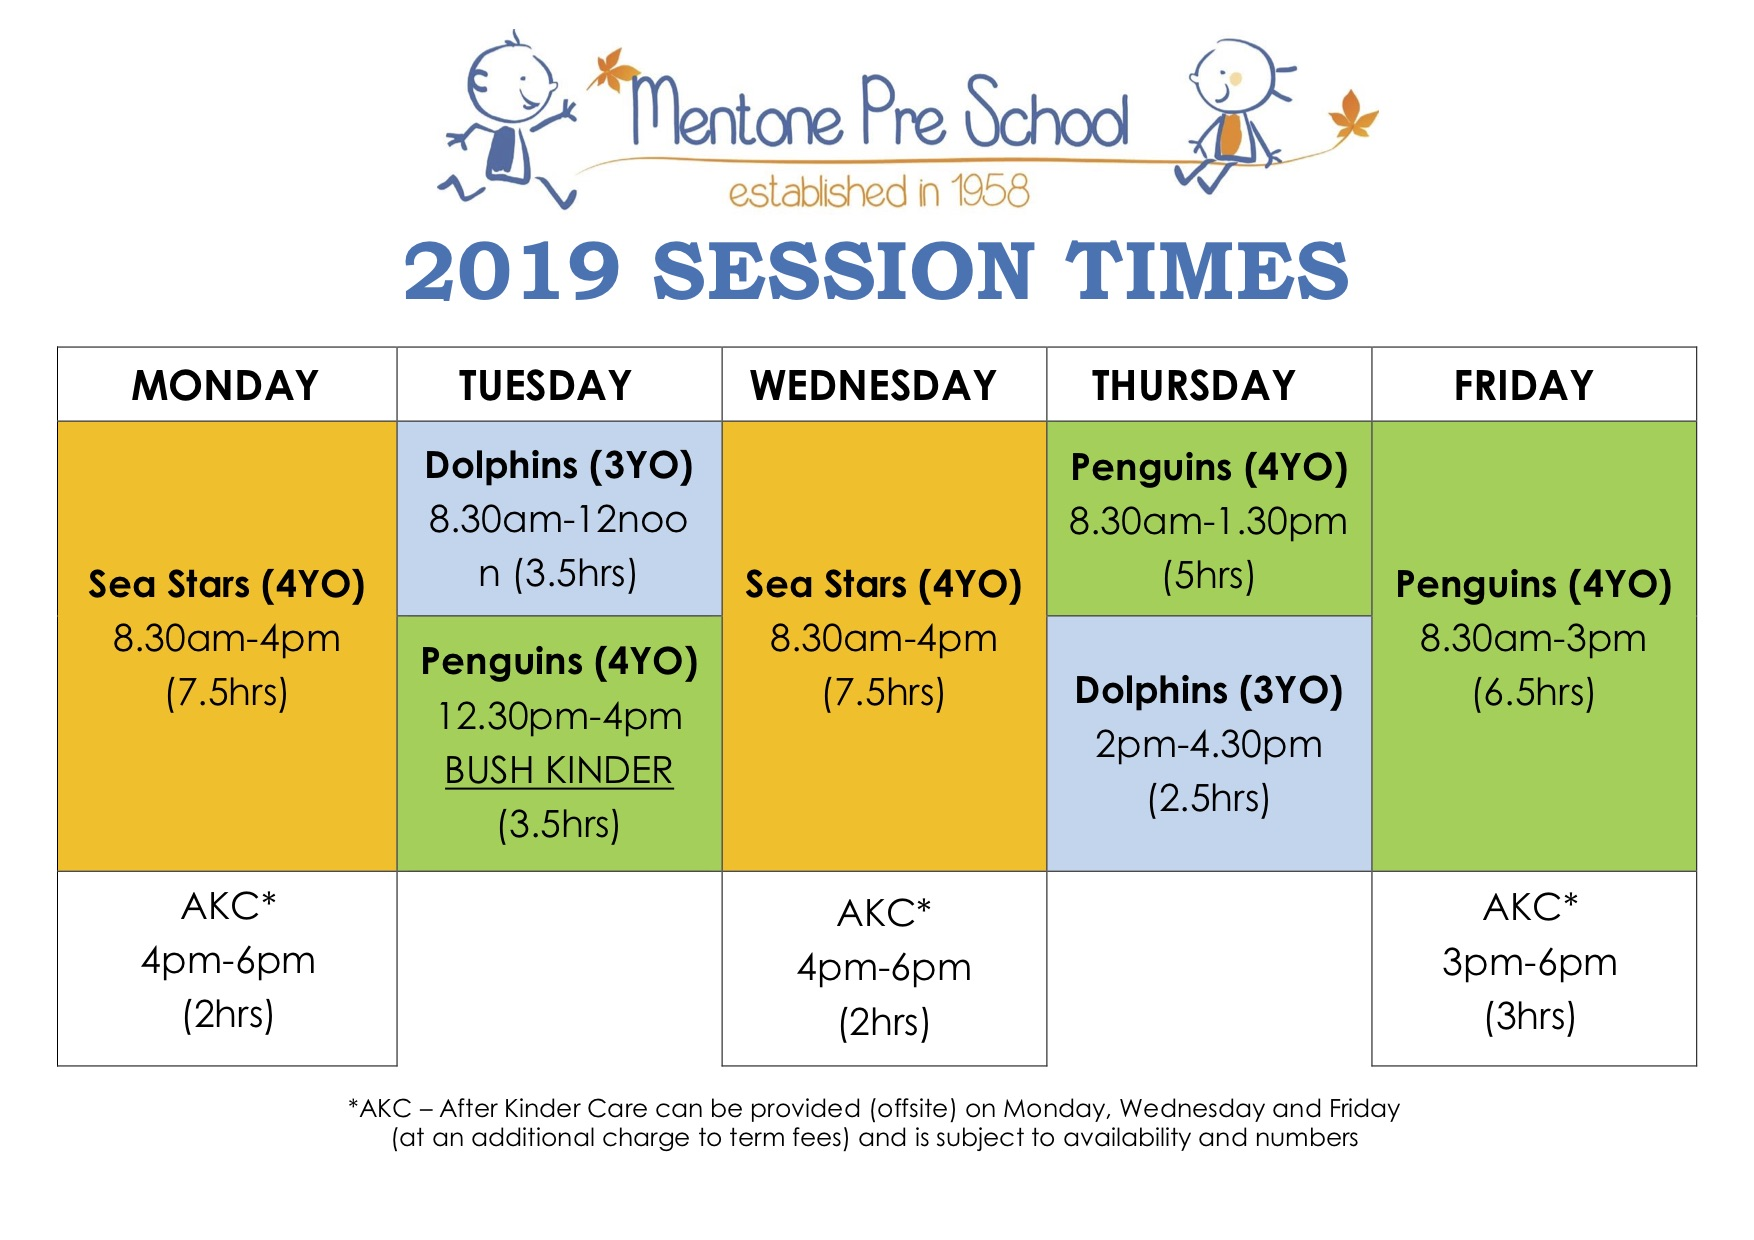 2019 Session Times